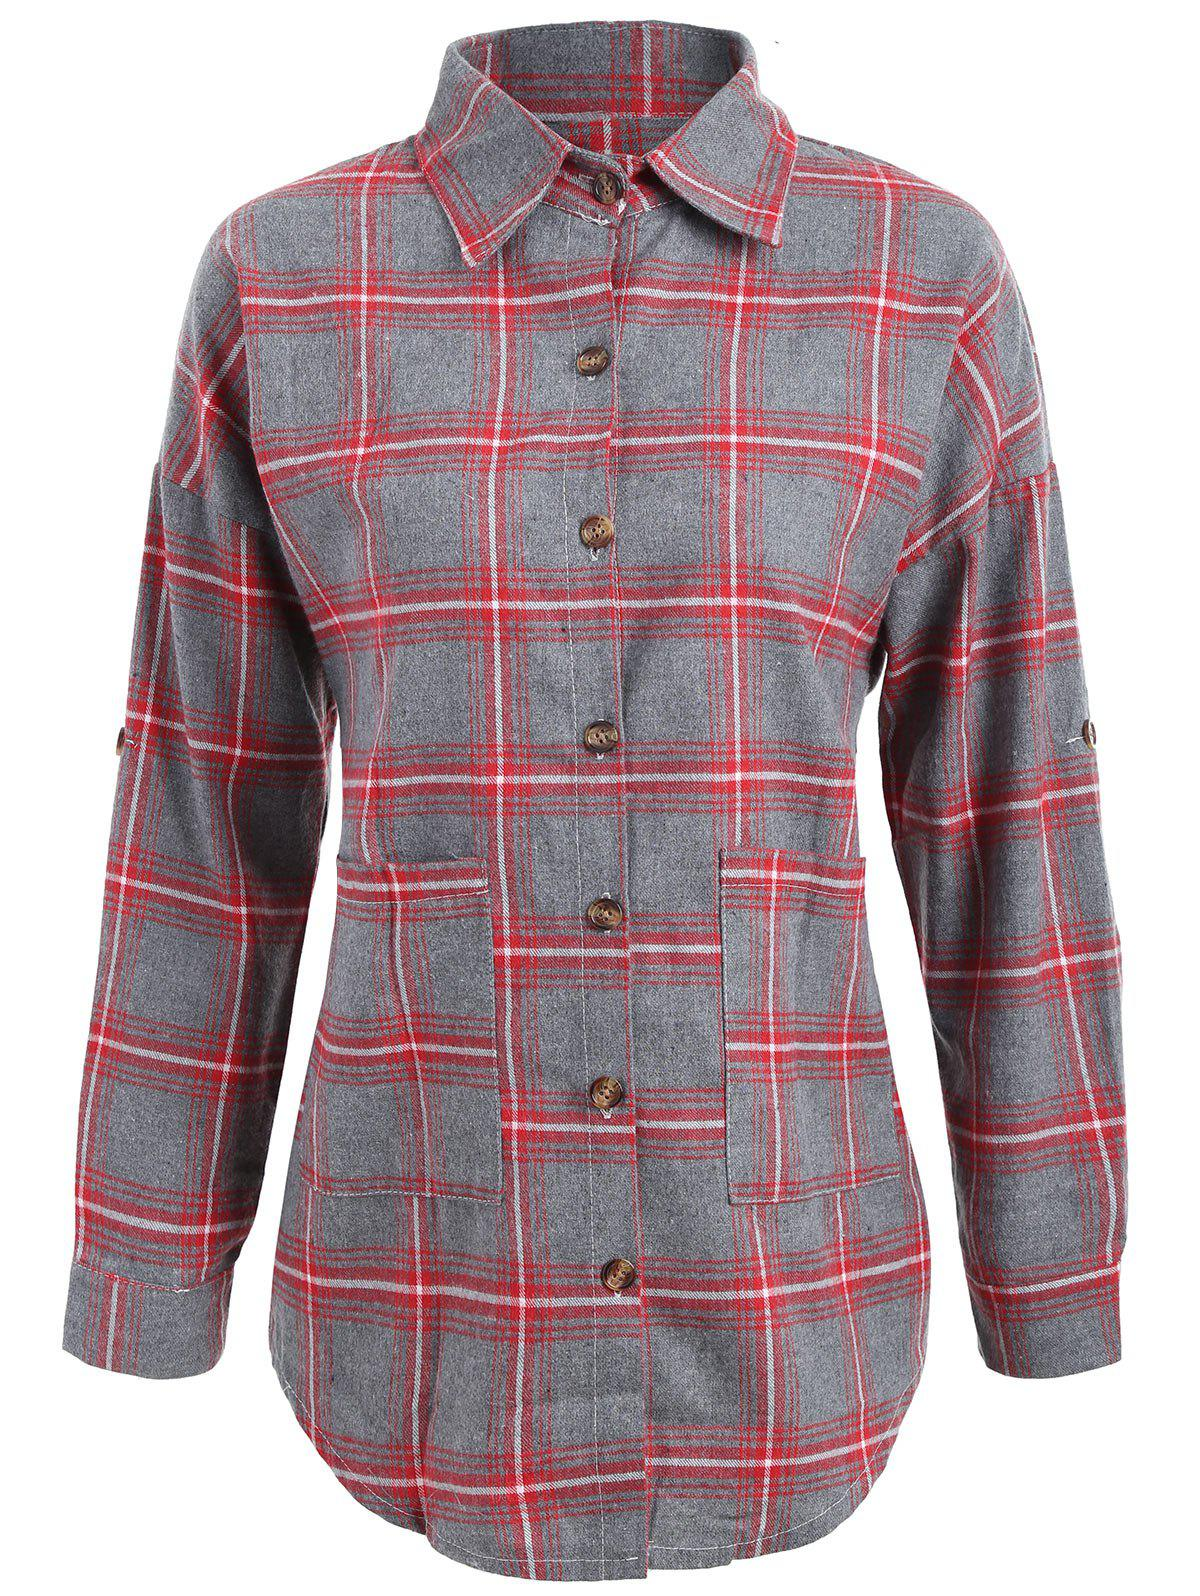 Plaid Button Up Plus Size Shirt Jacket - Rouge 4XL